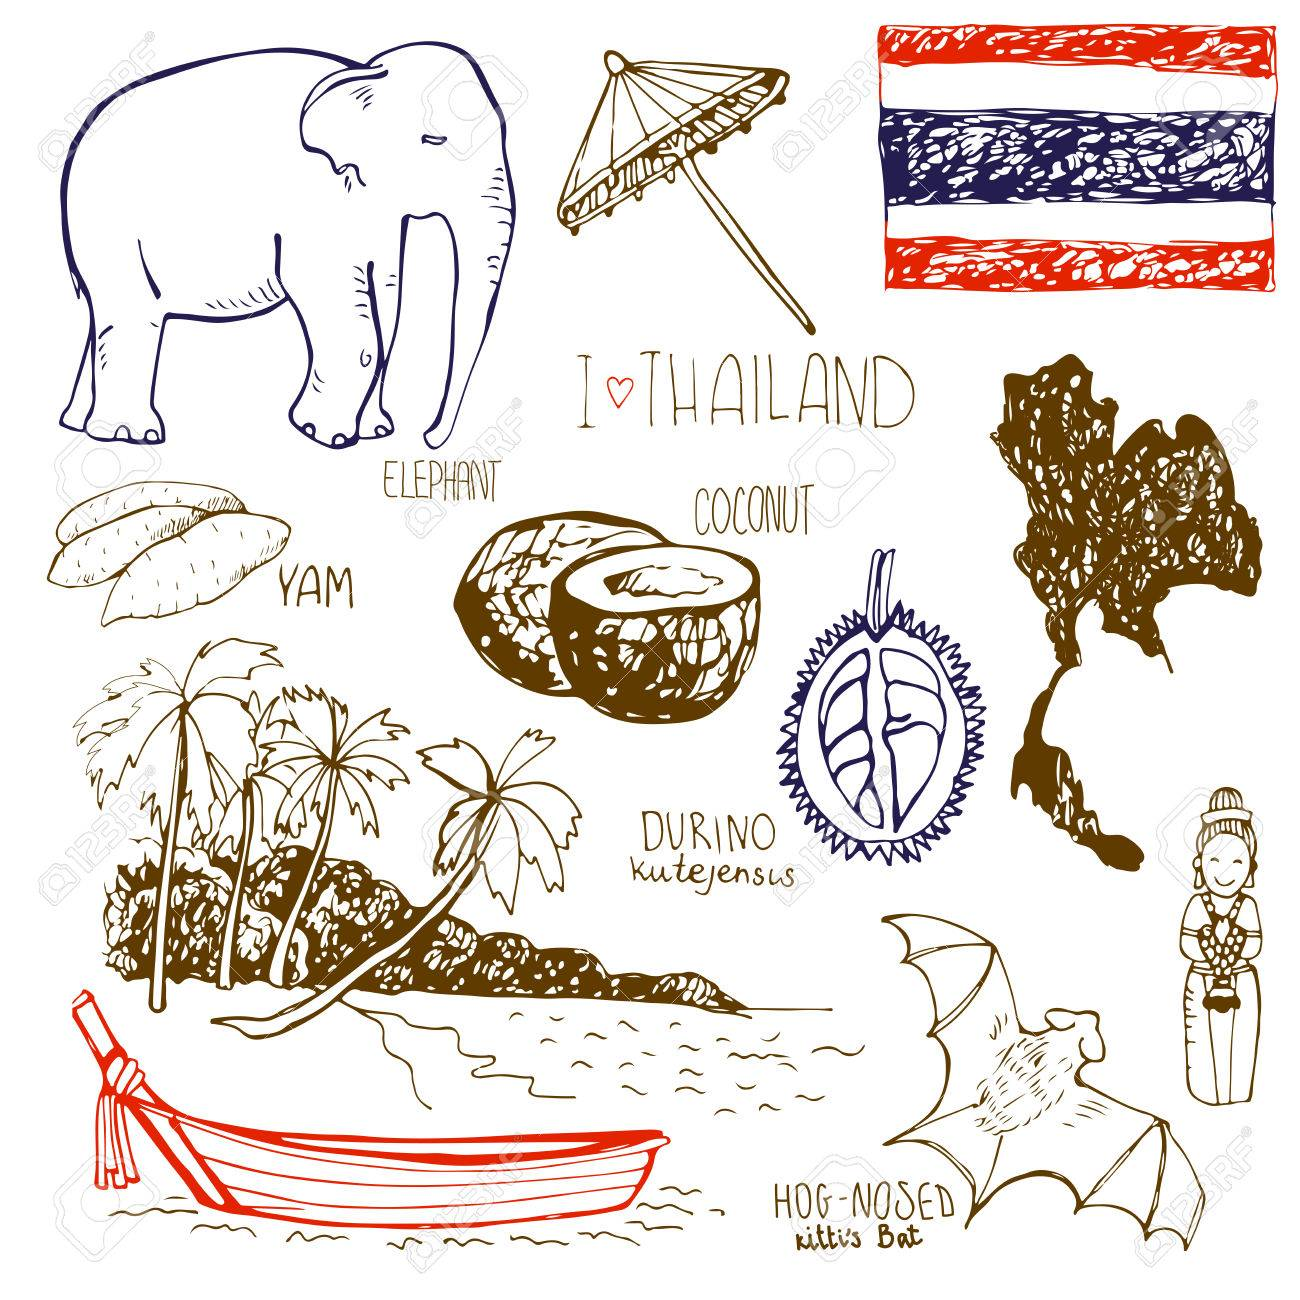 Hand drawn symbols of thailand with yam elefant durino hog hand drawn symbols of thailand with yam elefant durino hog nosed kittis biocorpaavc